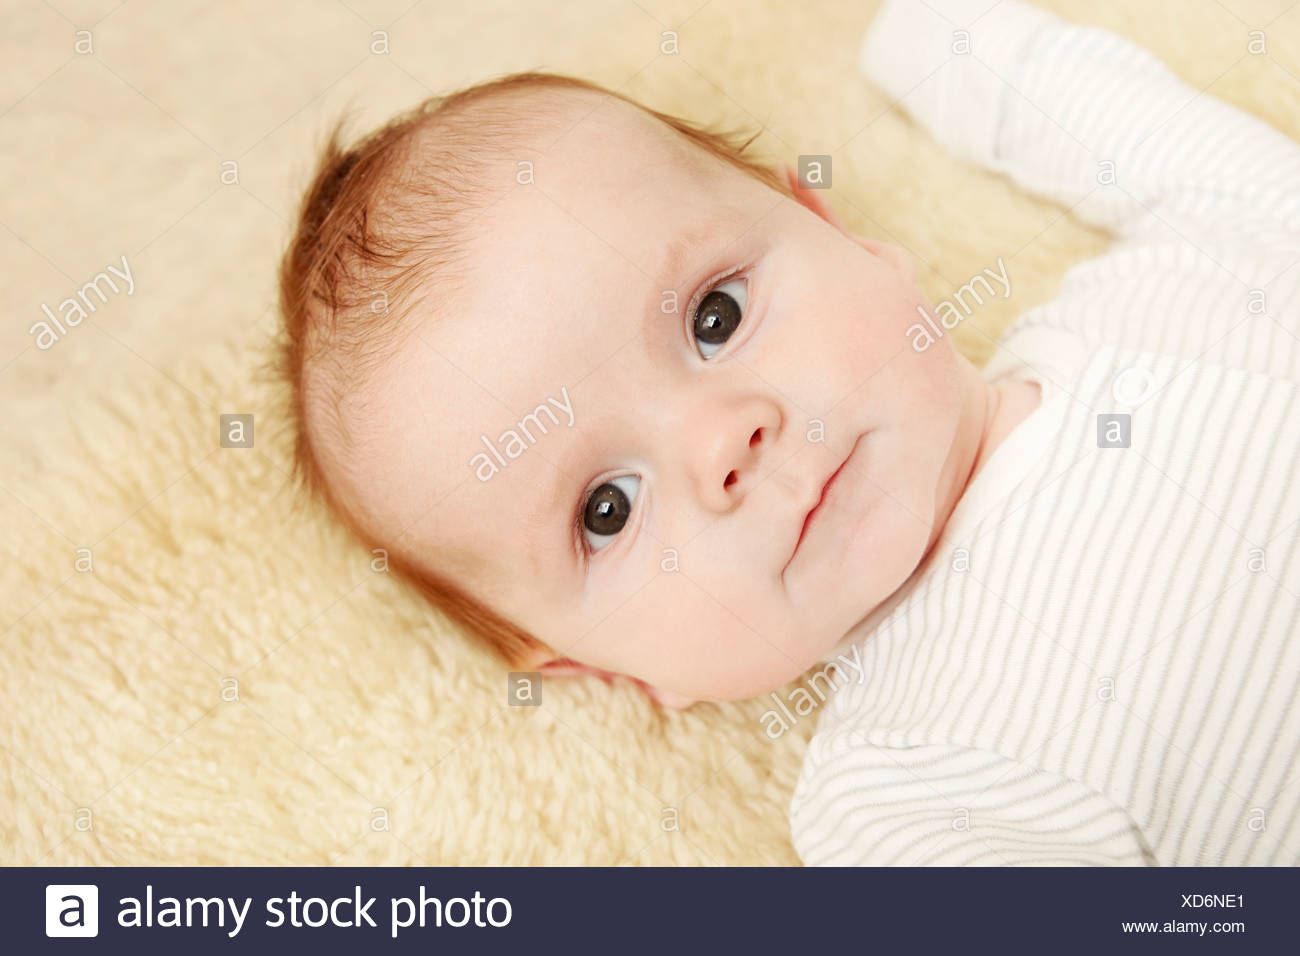 Two month old baby boy lying on furry blanket - Stock Image